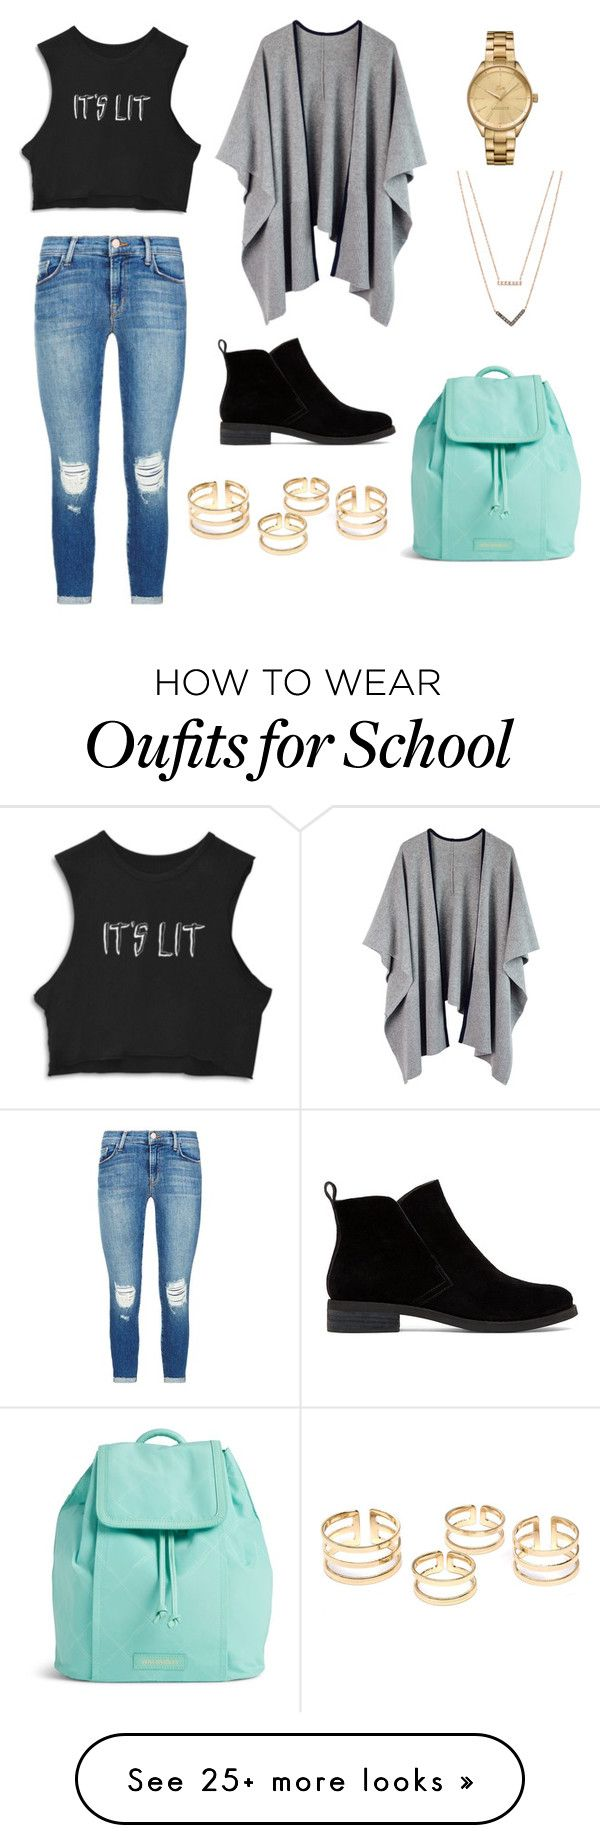 """""""high school"""" by fashion-life23 on Polyvore featuring J Brand, Lucky Brand, Lacoste, Michael Kors, Vera Bradley, women's clothing, women's fashion, women, female and woman"""